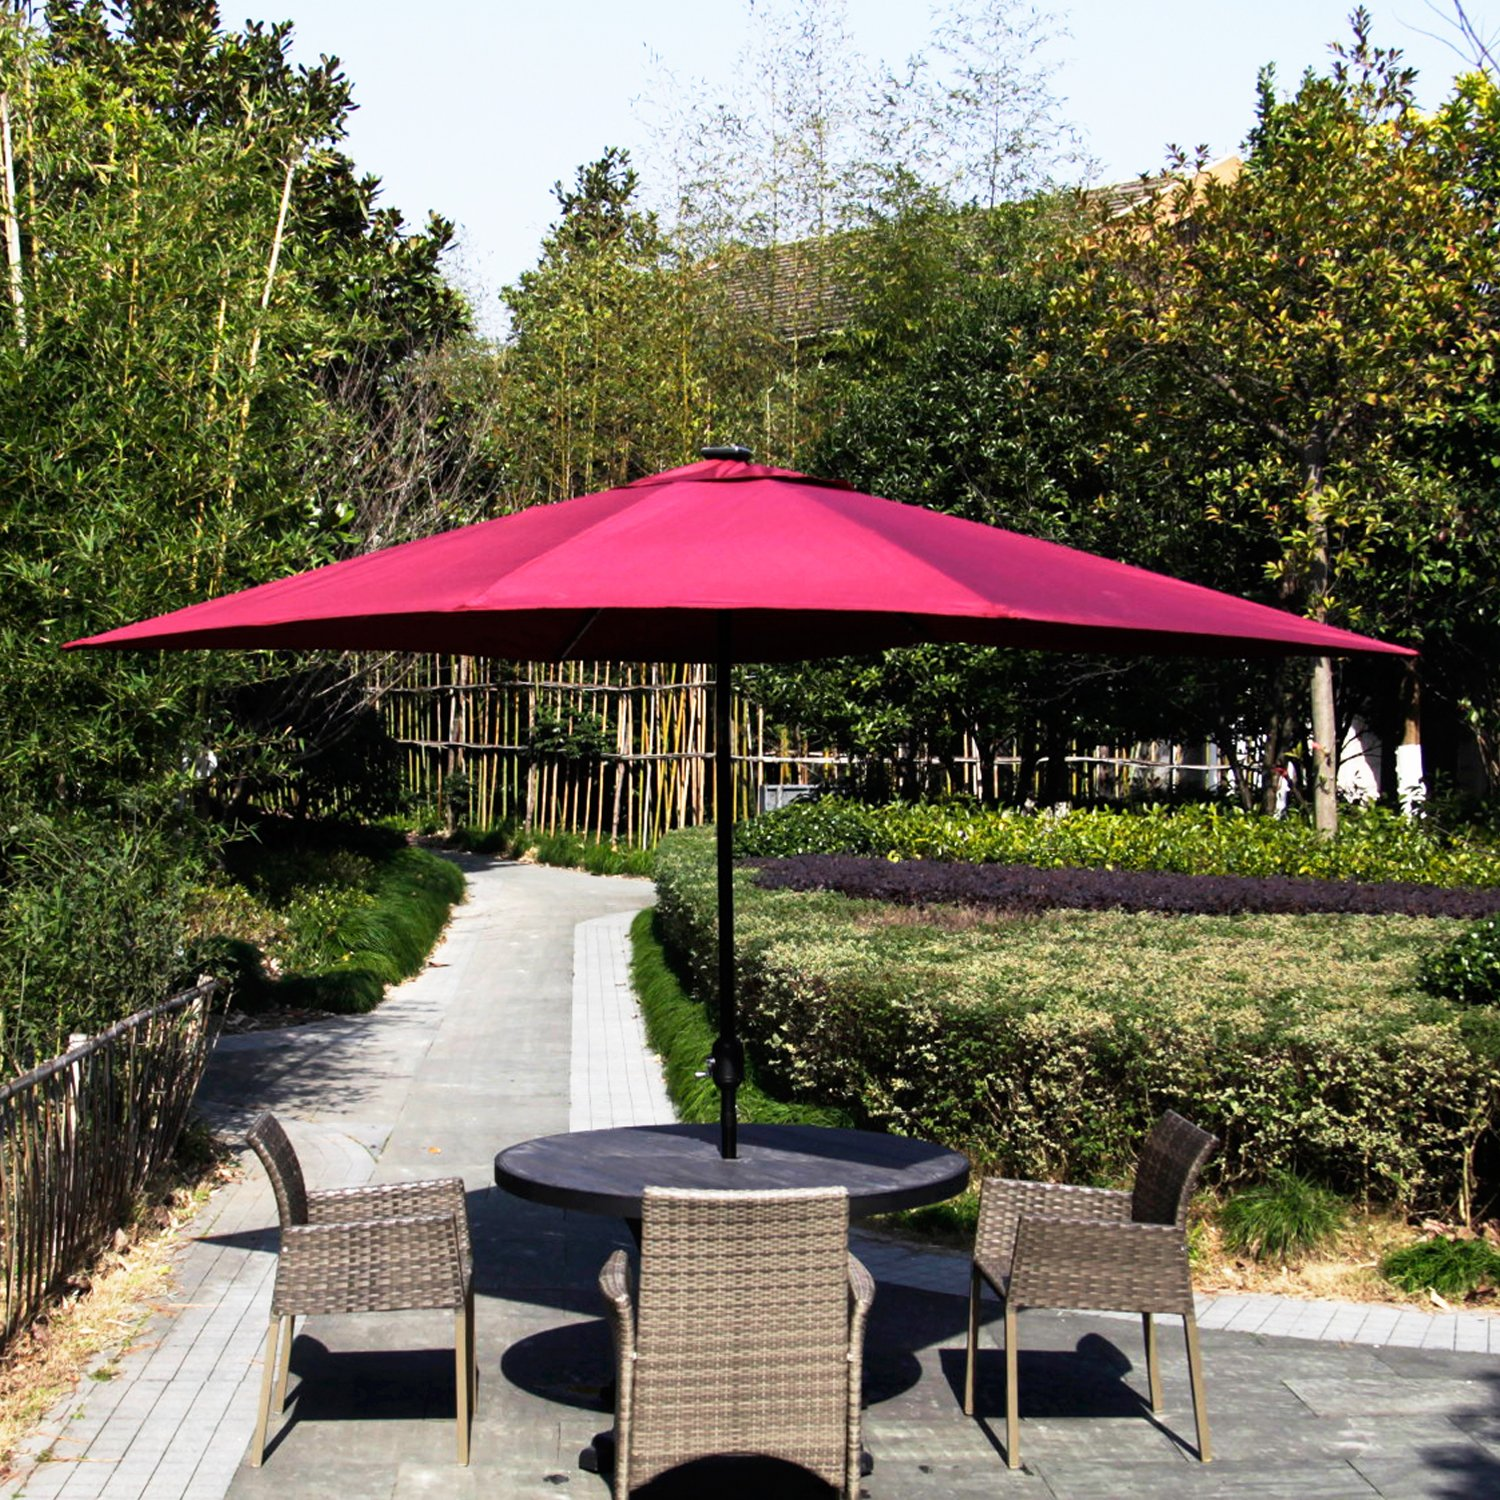 Peach Tree Sunbrella 9FT Round Patio Market Table Umbrella LED Double Top Outdoor Solar Power Lights Parasol with Push Button Tilt Crank Lift Mechanism, Burgundy